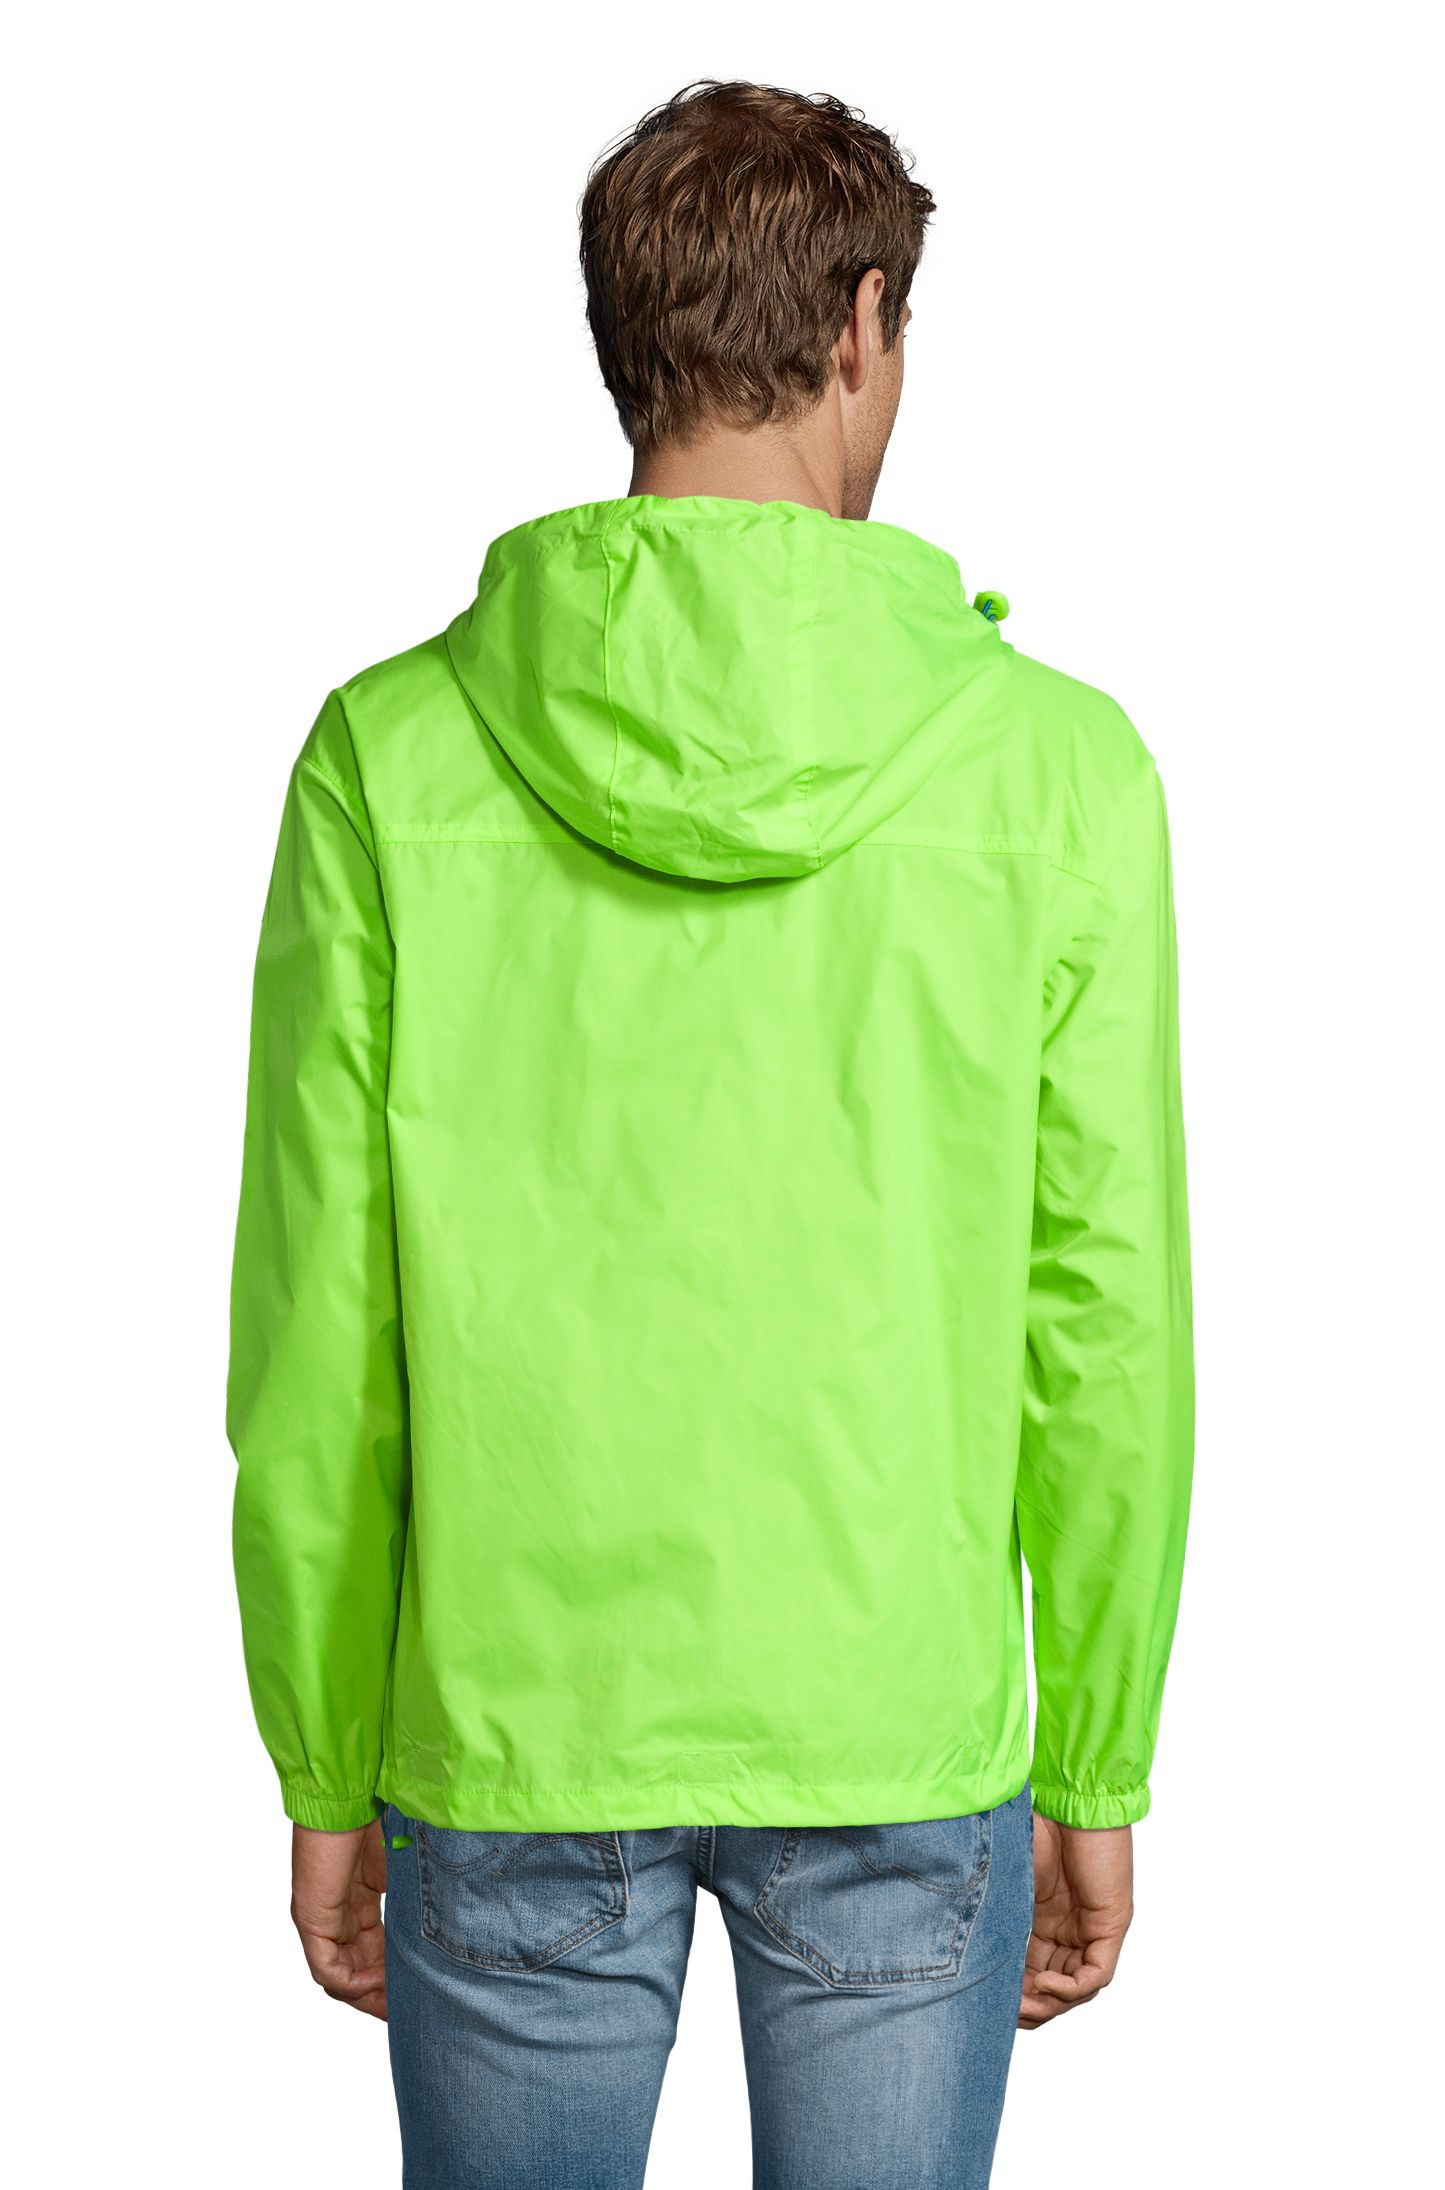 887 - Lime fluo / Royal